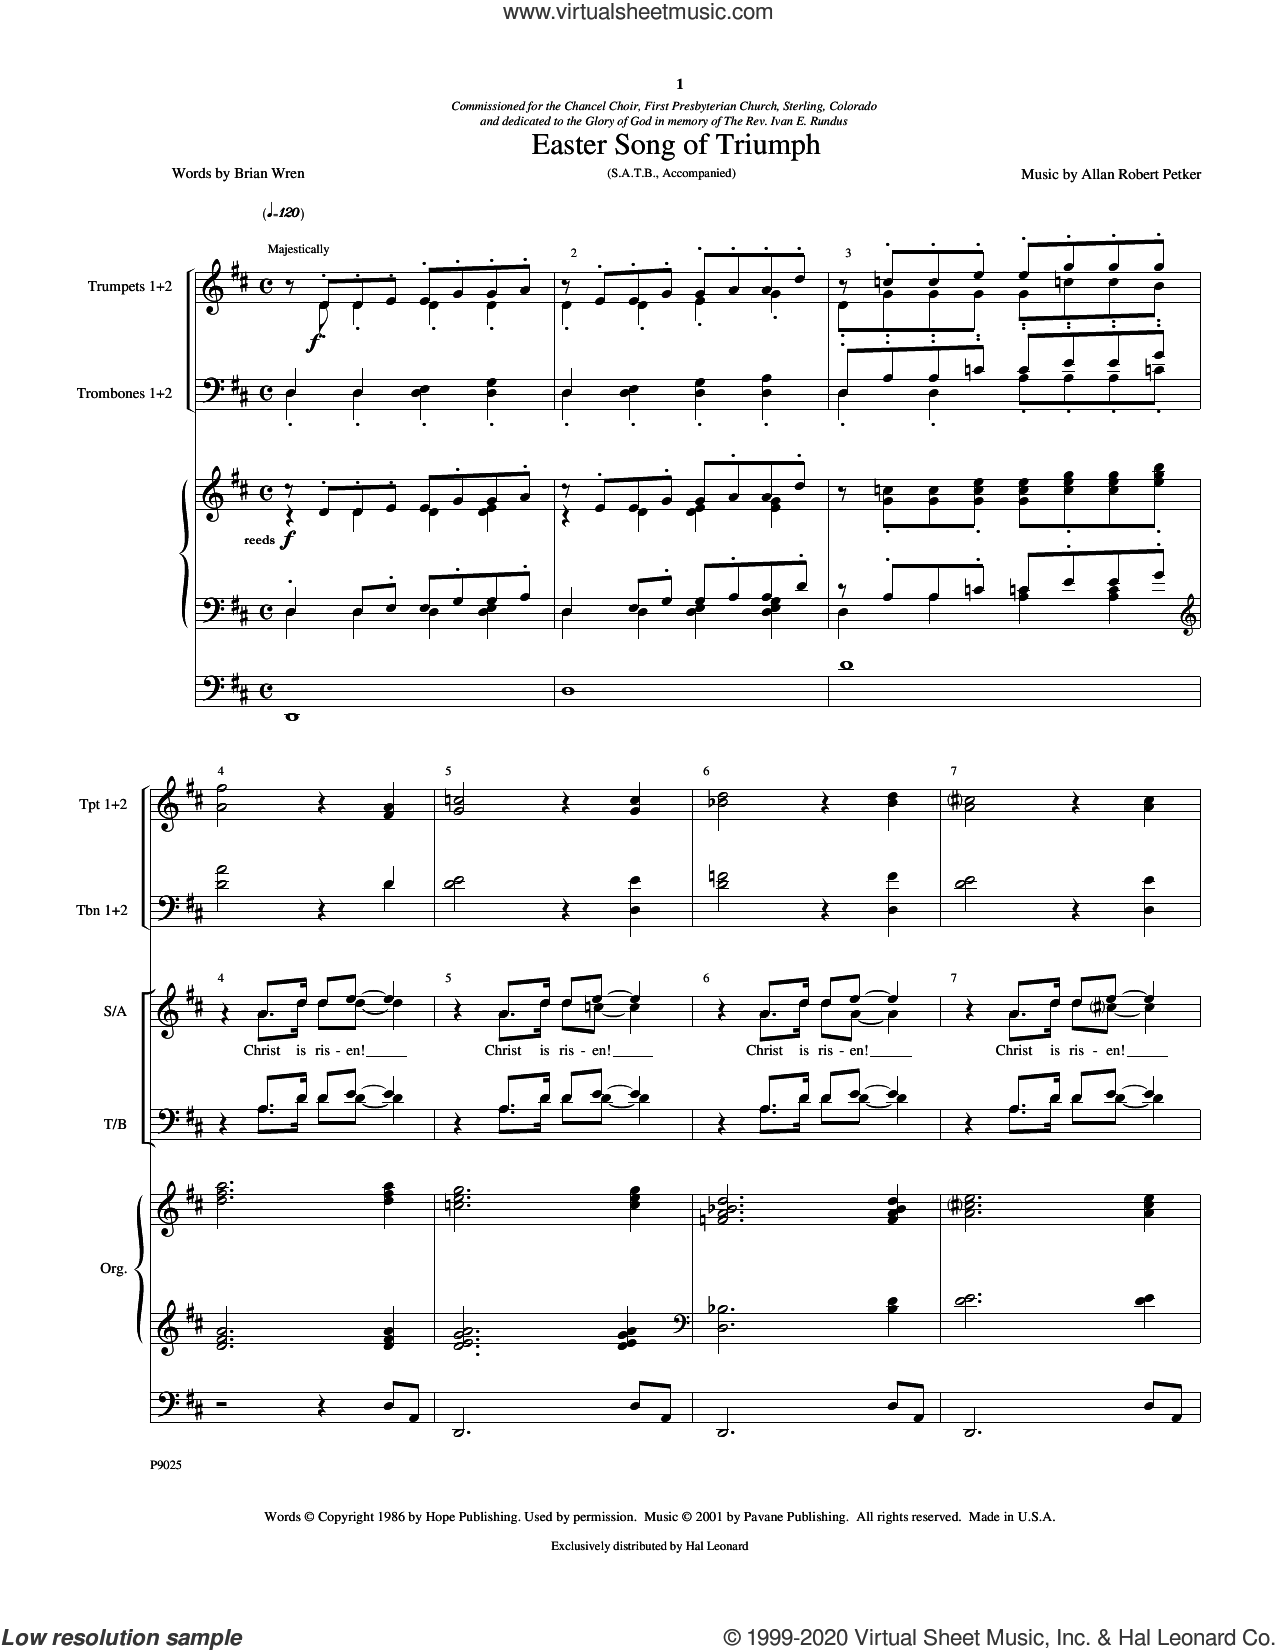 Easter Song Of Triumph (COMPLETE) sheet music for orchestra/band (Brass) by Allan Robert Petker, intermediate skill level